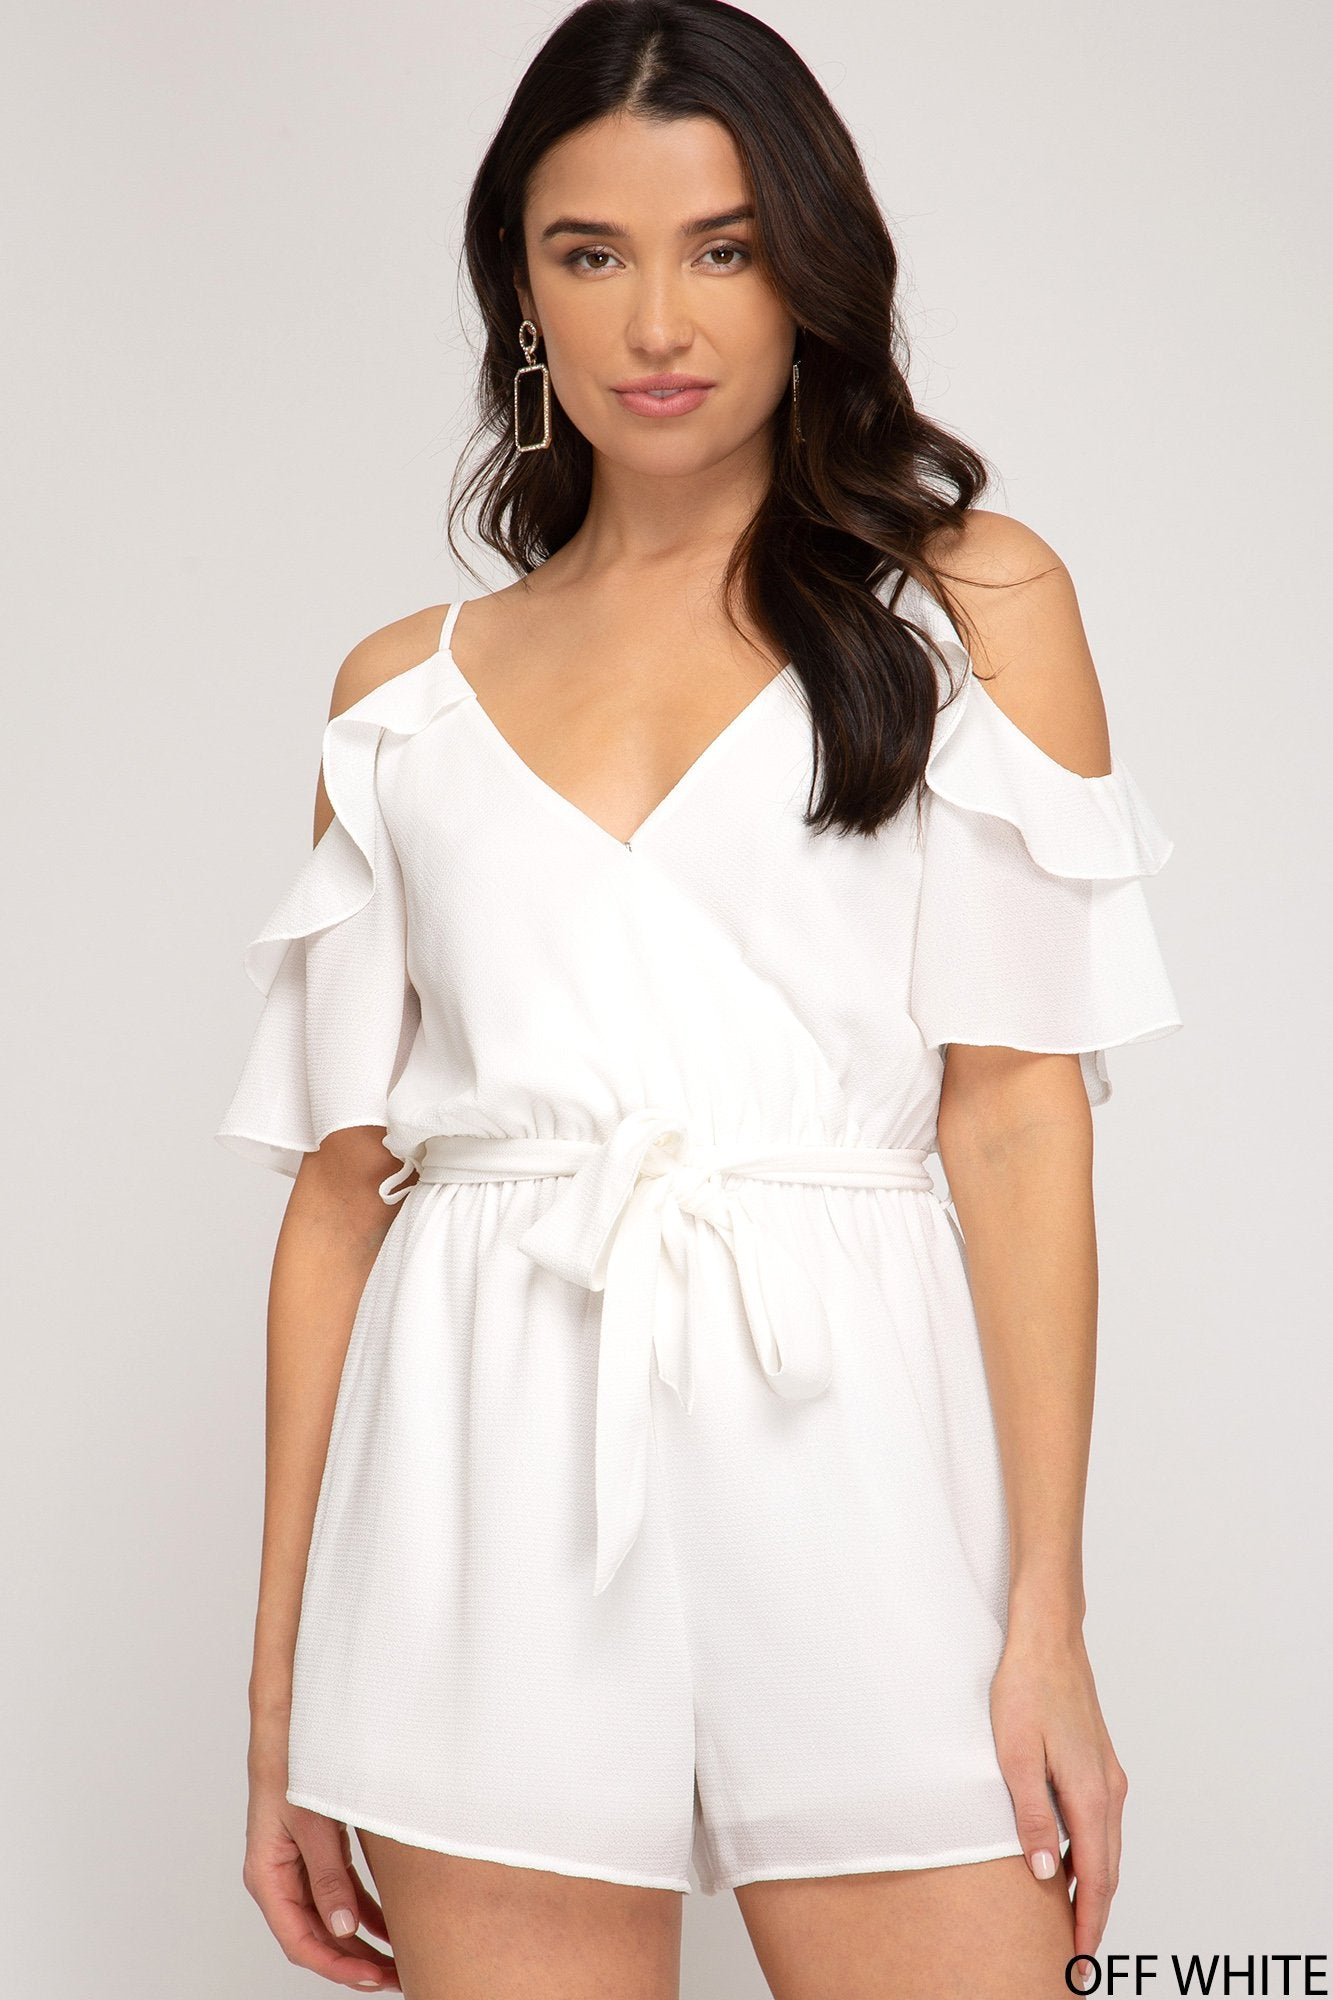 SHE AND SKY Women's Romper OFFWHITE / S Ruffled Cold Shoulder Half Sleeve Romper || David's Clothing SS3870